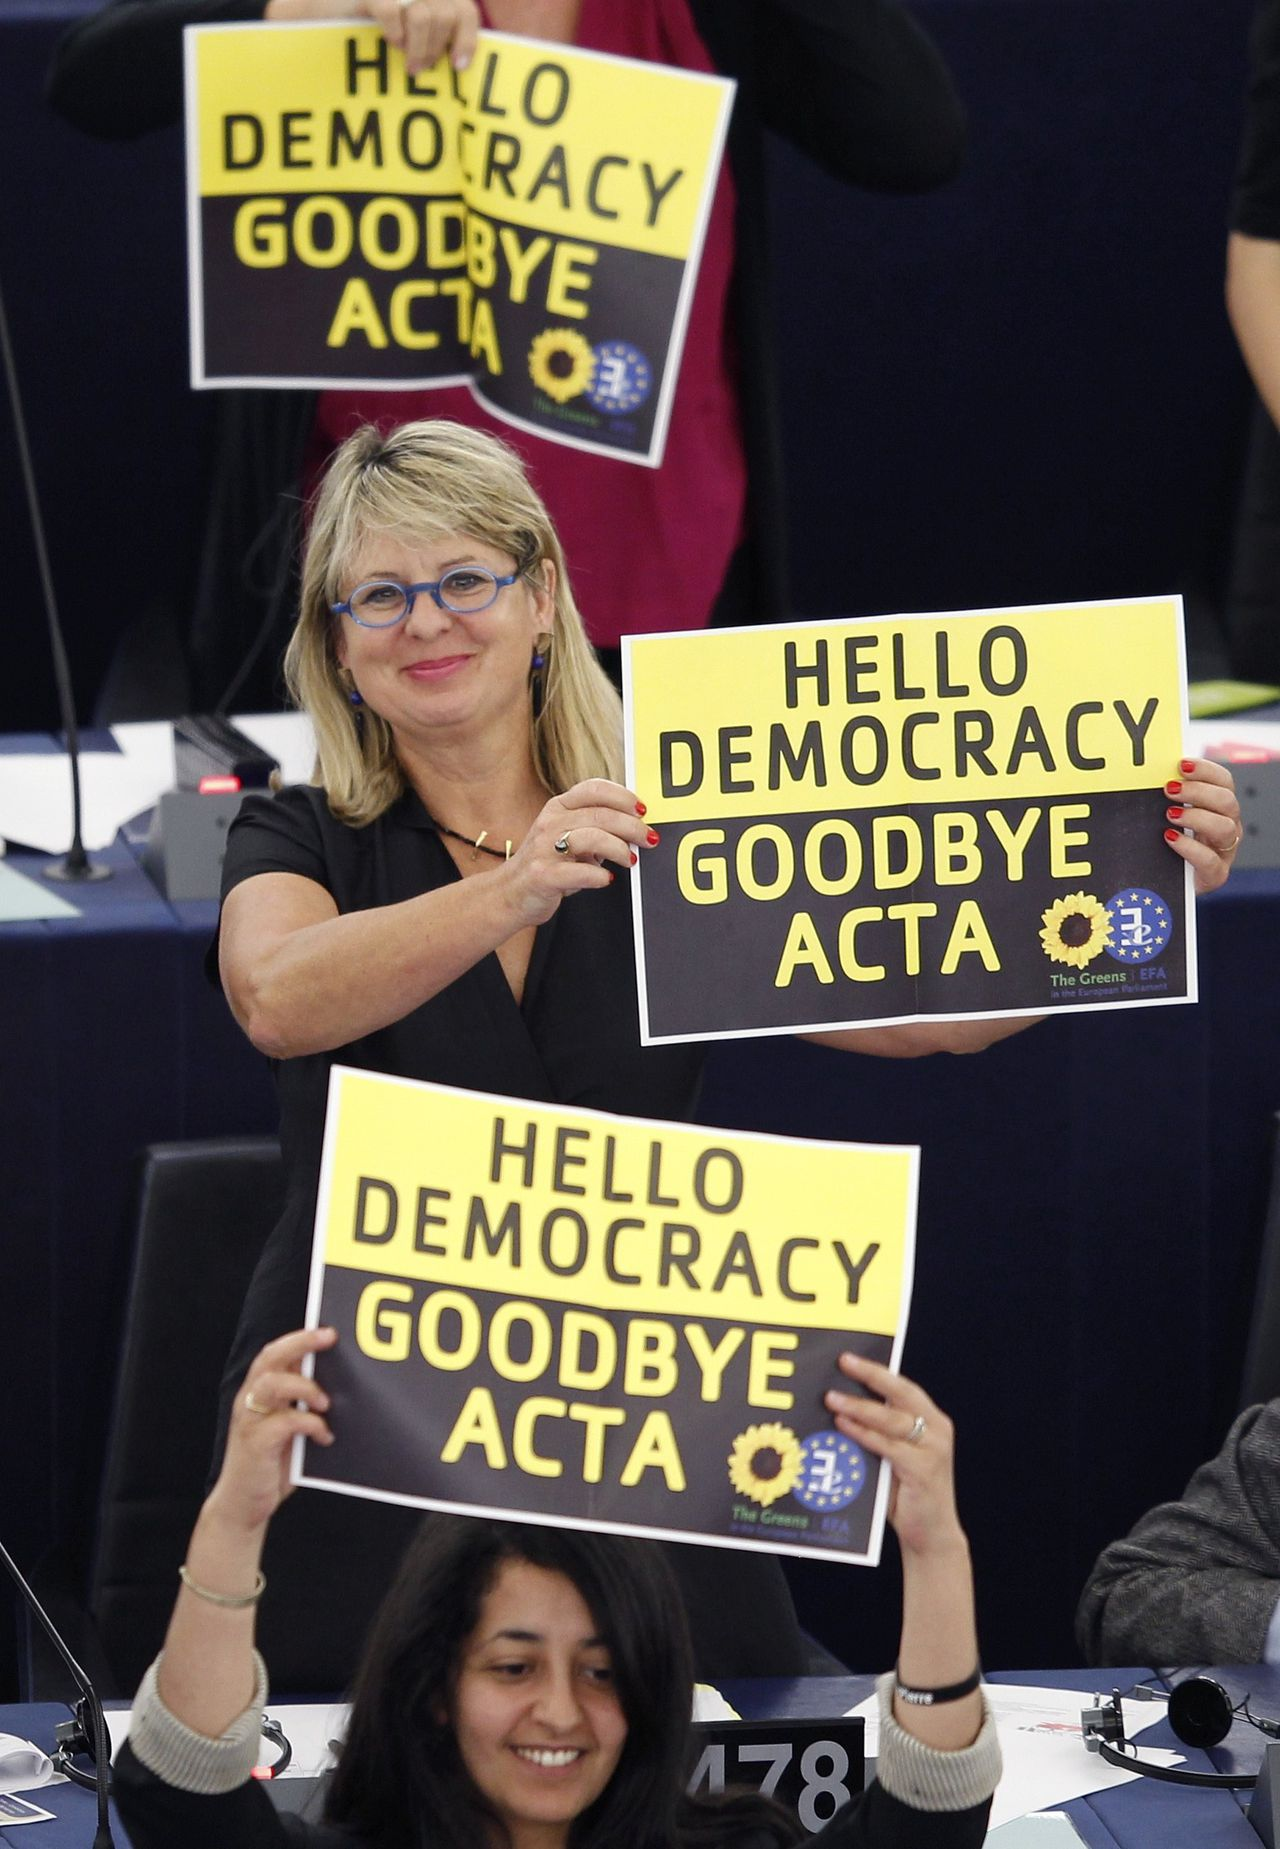 Members of the the Group of the Greens/European Free Alliance hold posters which read 'hello democracy, goodbye ACTA' during a voting session on the Anti-Counterfeiting Trade Agreement (ACTA) at the European Parliament in Strasbourg, July 4, 2012. REUTERS/Vincent Kessler (FRANCE - Tags: POLITICS)